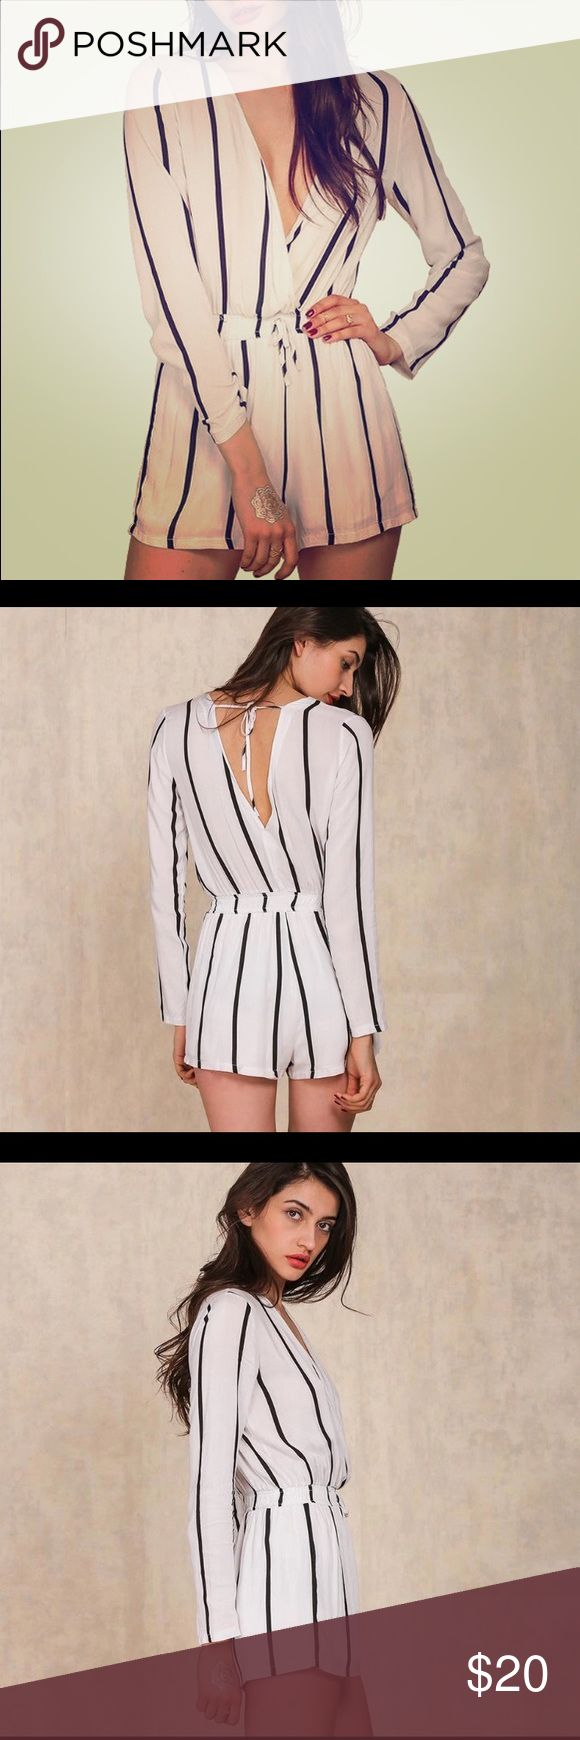 NWT white & black stripes long sleeve jumpsuit Up for sale is a brand new white with black stripes jumpsuit/ romper/ playsuit in a size small. Long sleeves with double V. Never worn with tags. Perfect for spring and summer. Pants Jumpsuits & Rompers